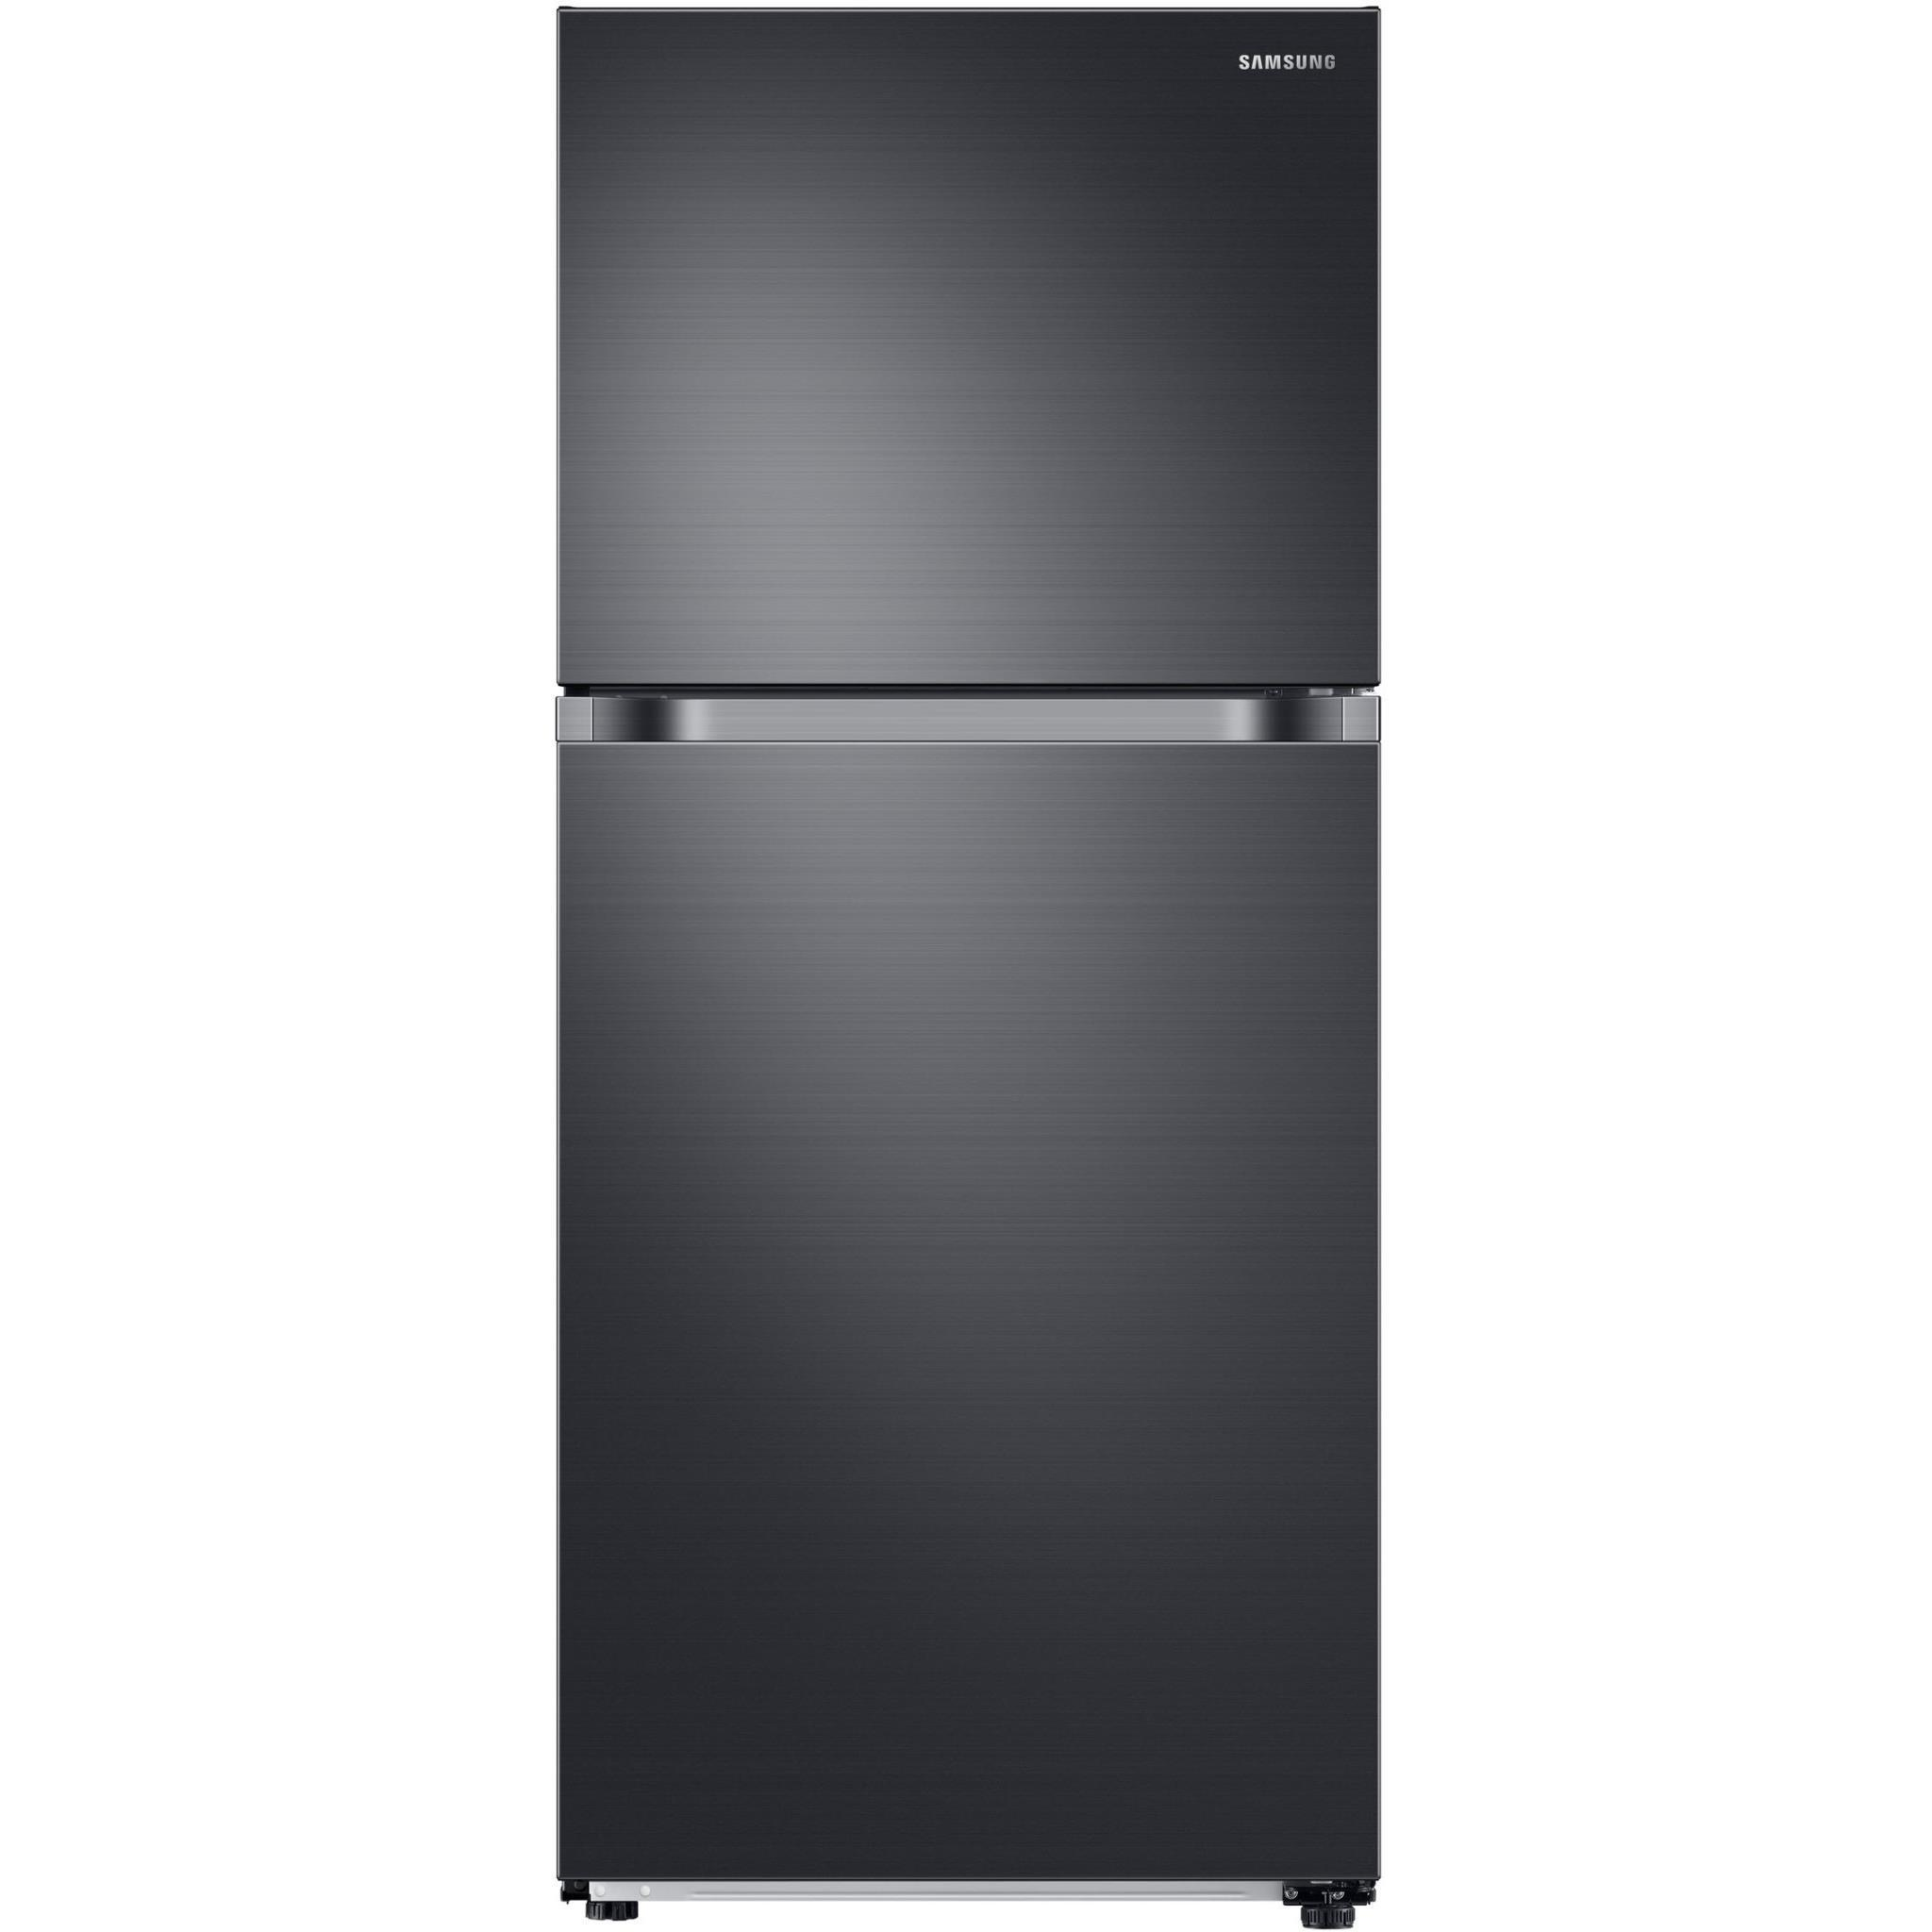 Samsung SR520BLSTC 525L Top Mount Fridge (Black S/Steel)